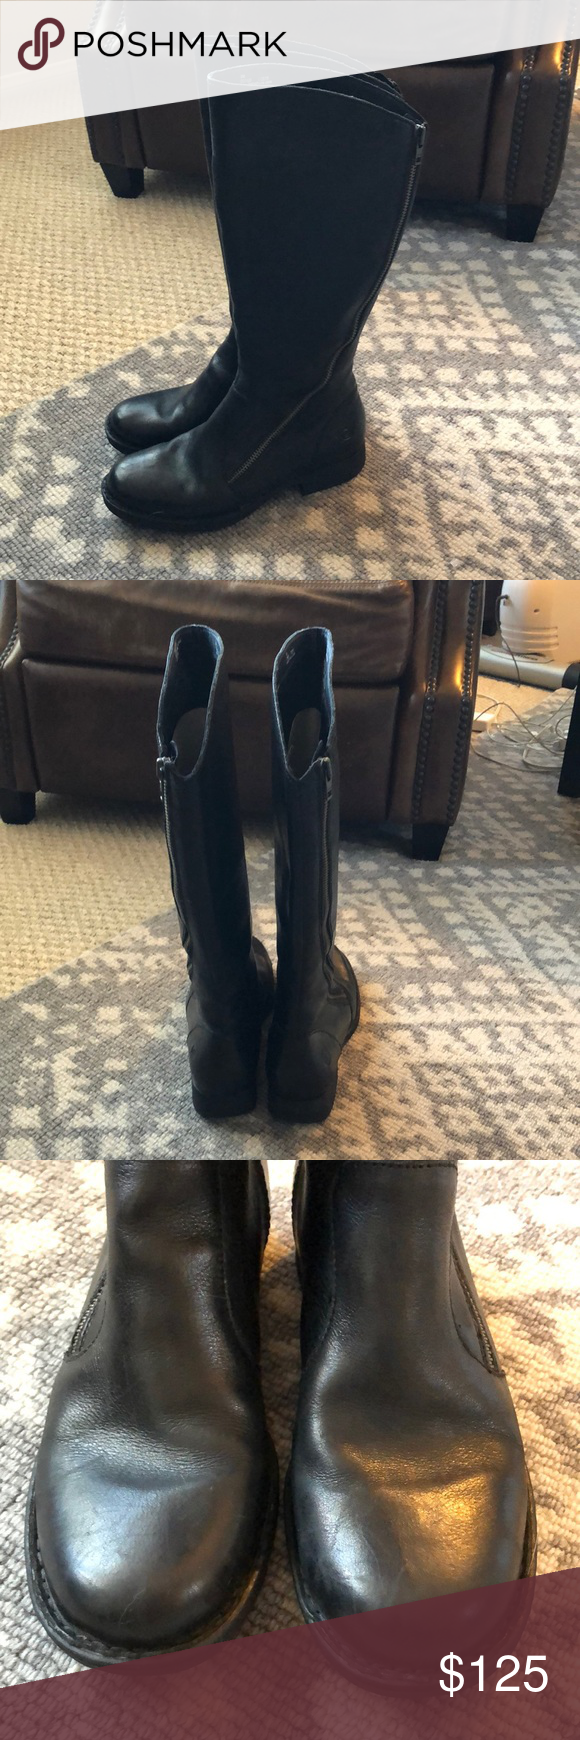 "f4c08e49fd1f Born Laurette tall boots size 9 Worn 3-4 times. Light wear to the soles and  light scuffs on heels. 1.25"" heel. 14.75"" shaft circumference."